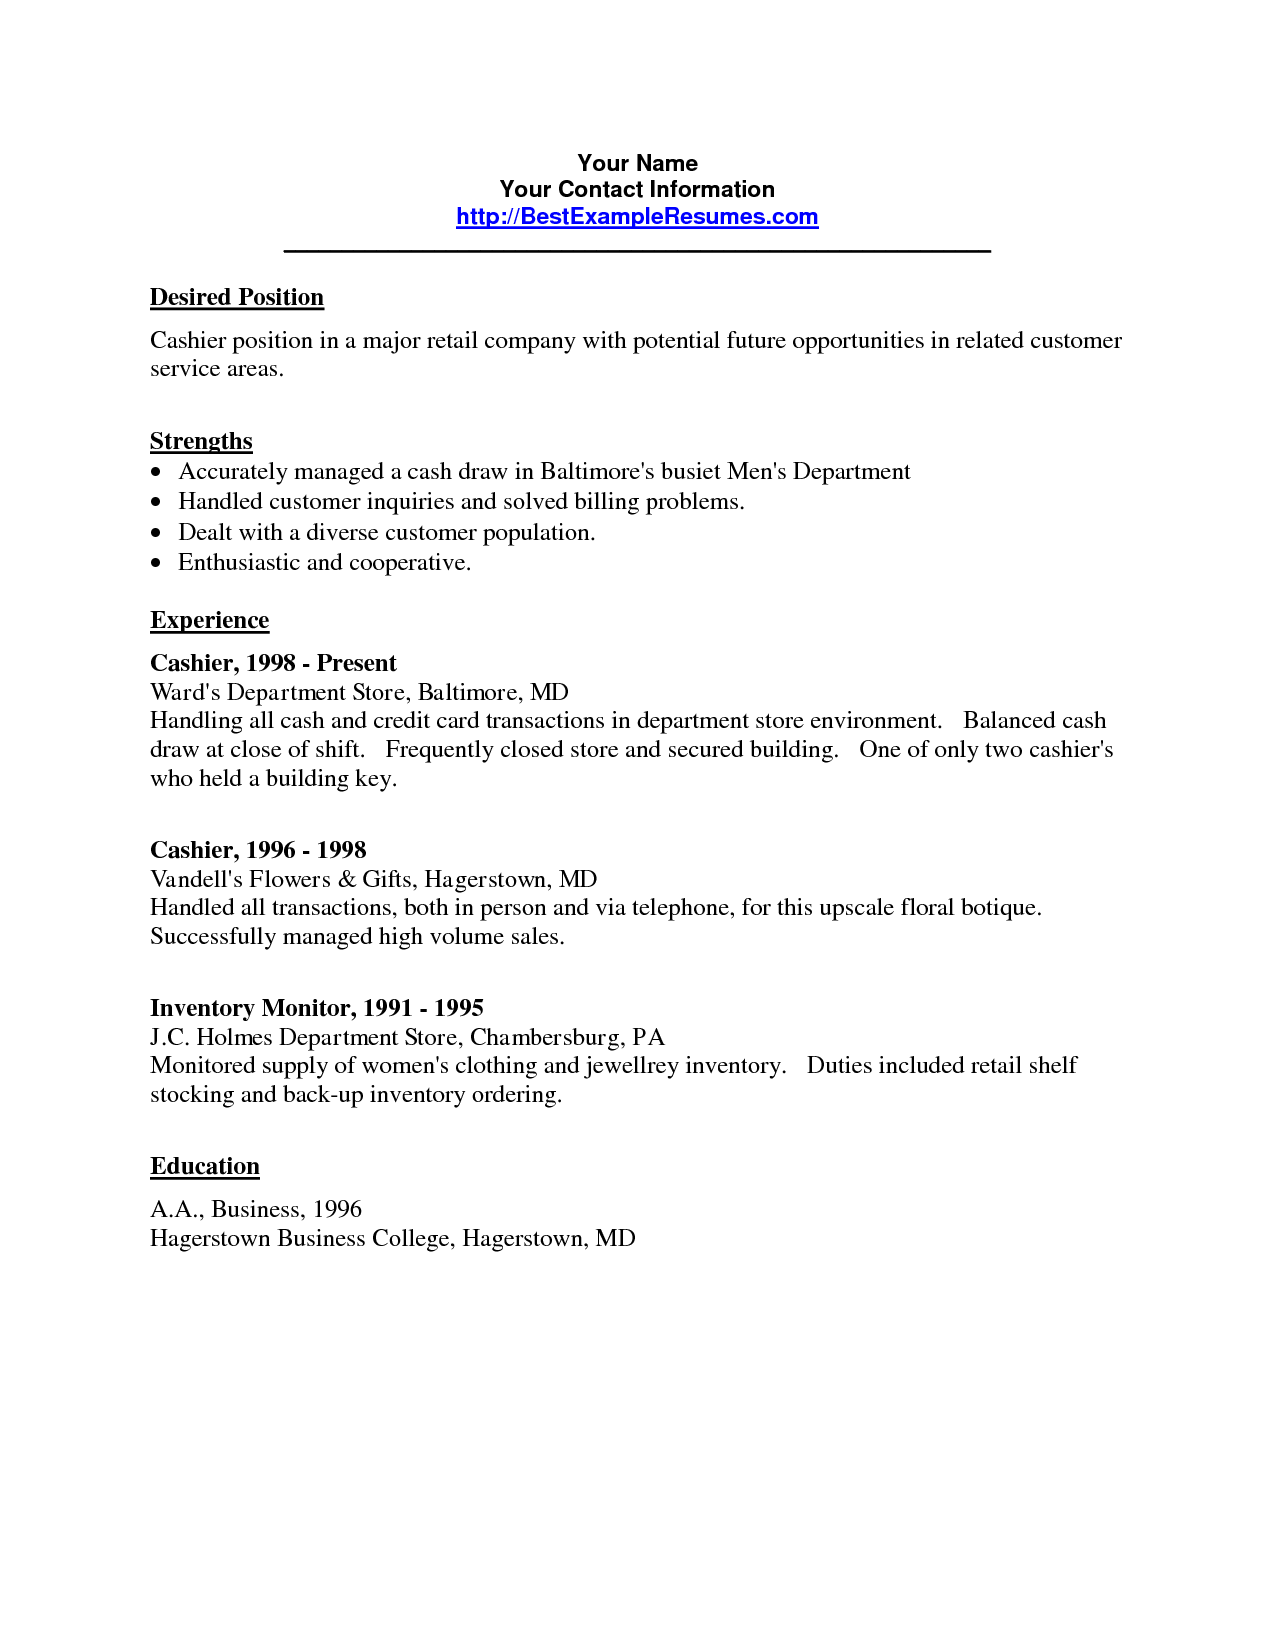 Simple Resume Examples Job Resume Sample Cashier Examples For Application Impressive